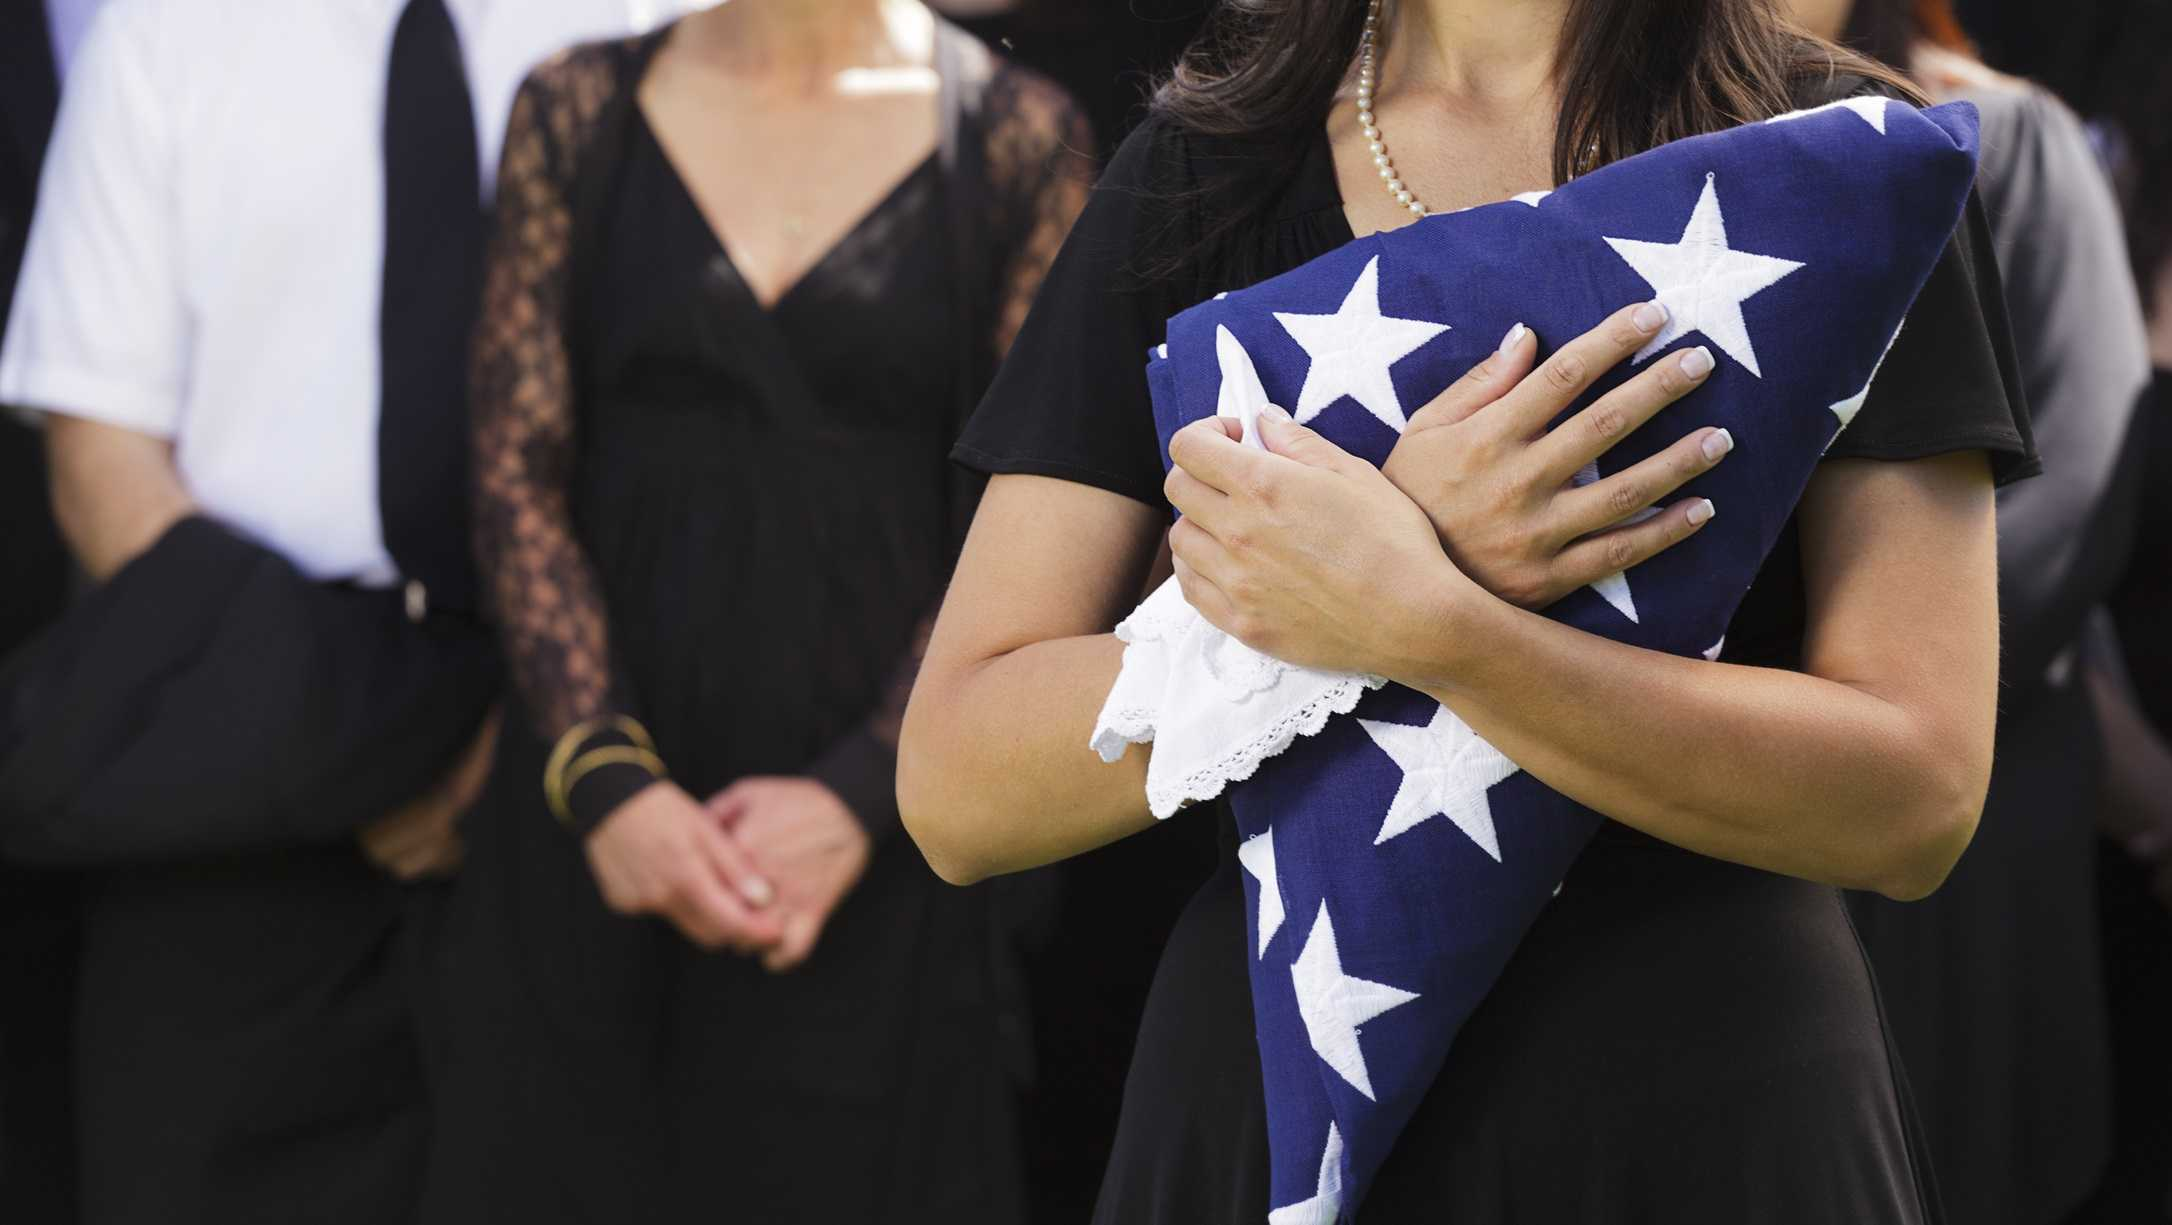 A woman holds a folded American flag at a funeral.